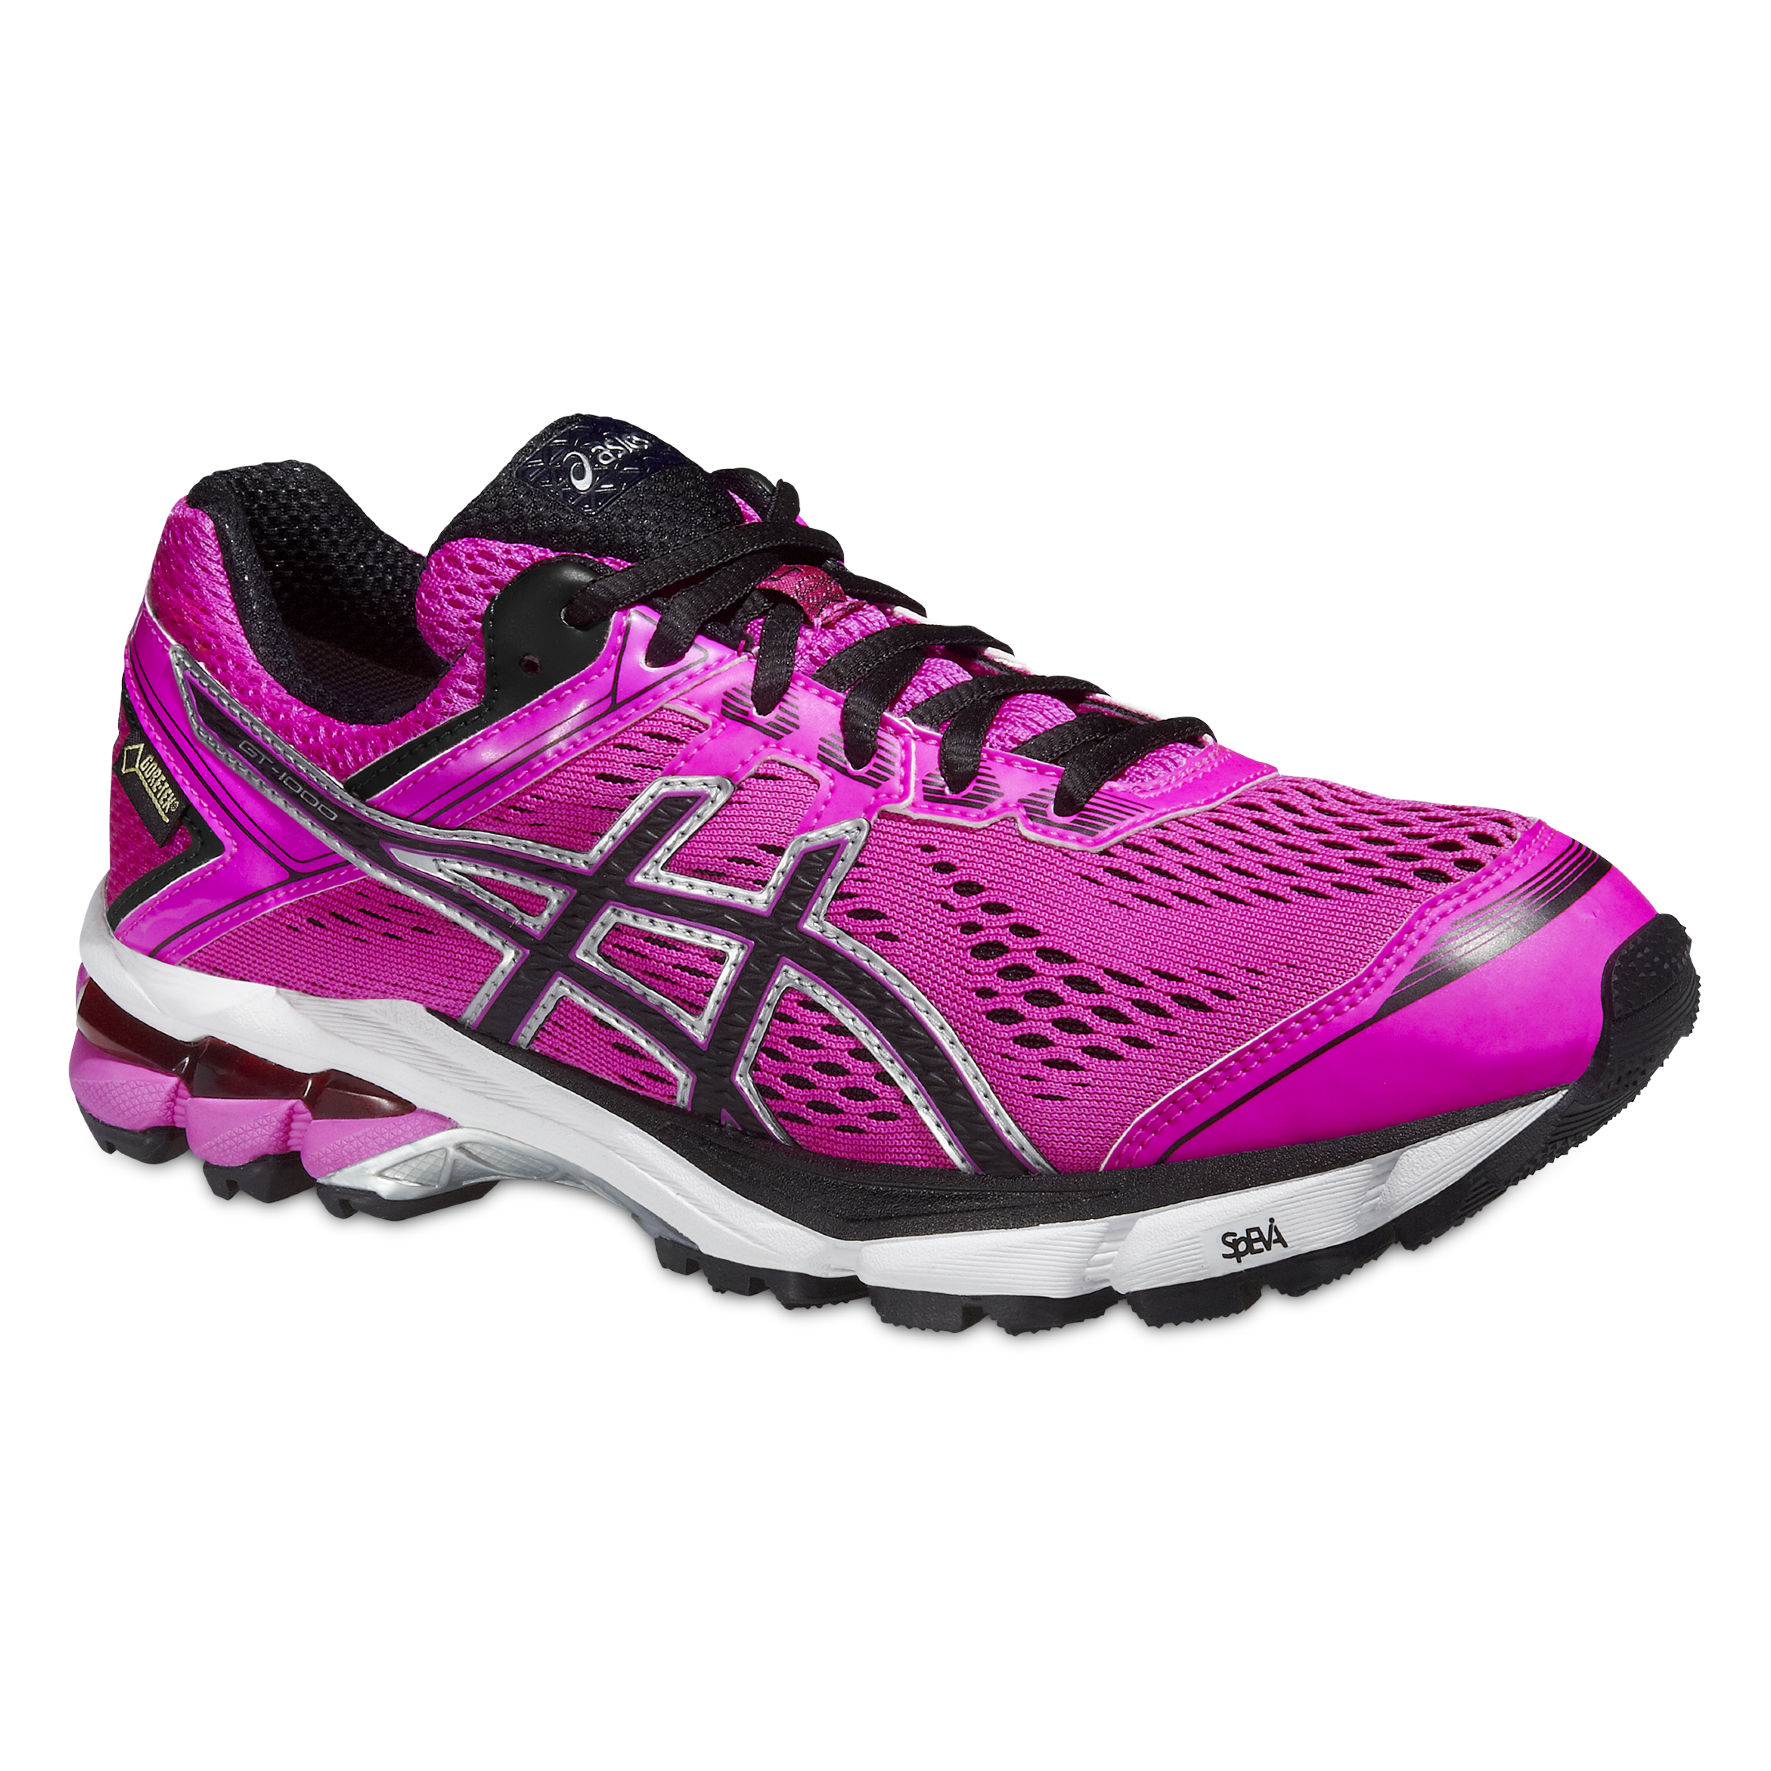 Asics Lady Gel GT 1000 4 GTX in Pink